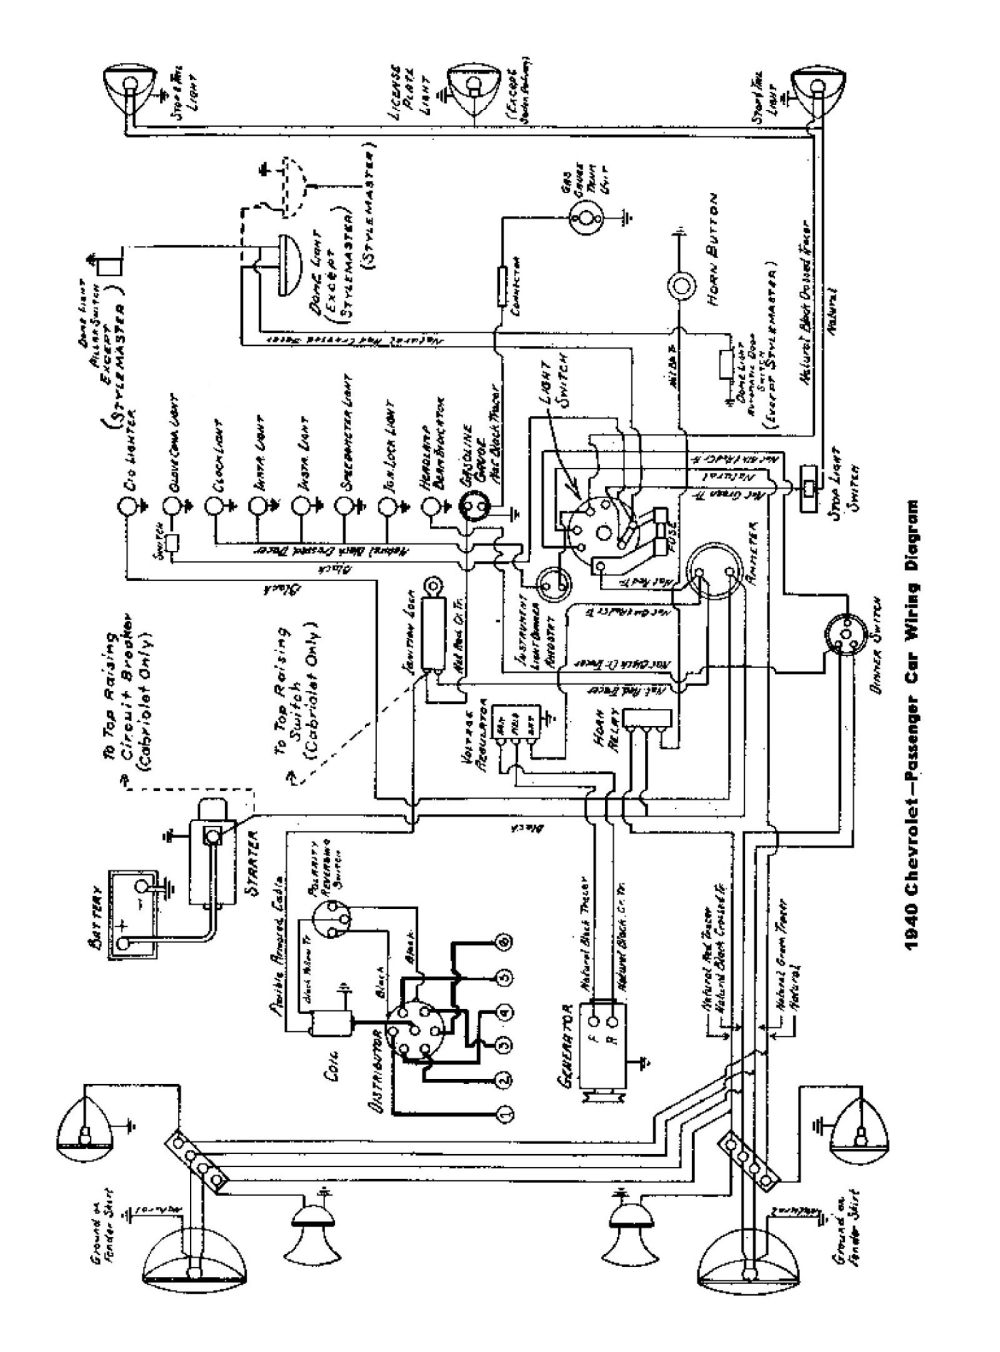 medium resolution of 1931 cadillac wiring diagram wiring diagram used 1931 buick wiring diagram